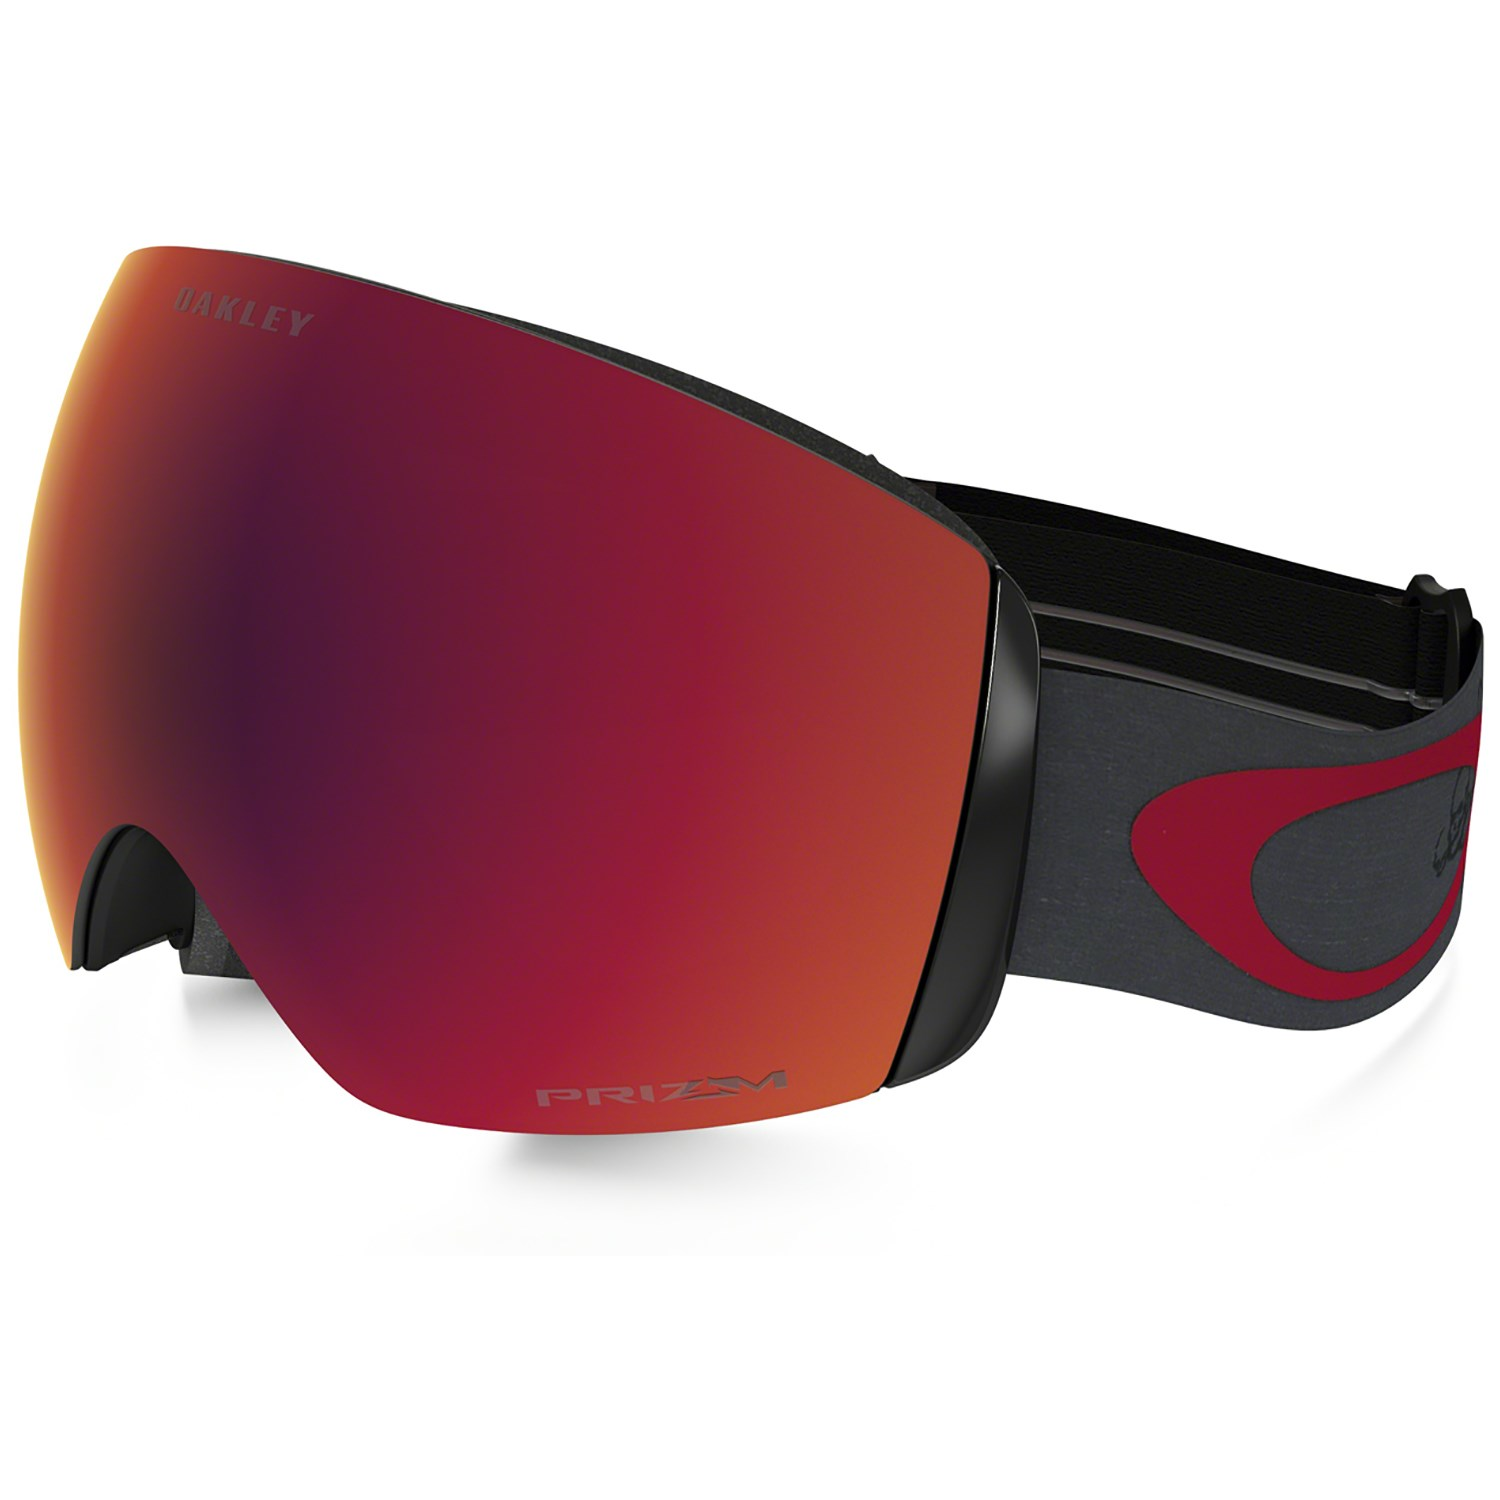 how to change glass in oakley goggles  oakley flight deck seth morrison goggles $210.00 $159.99 sale